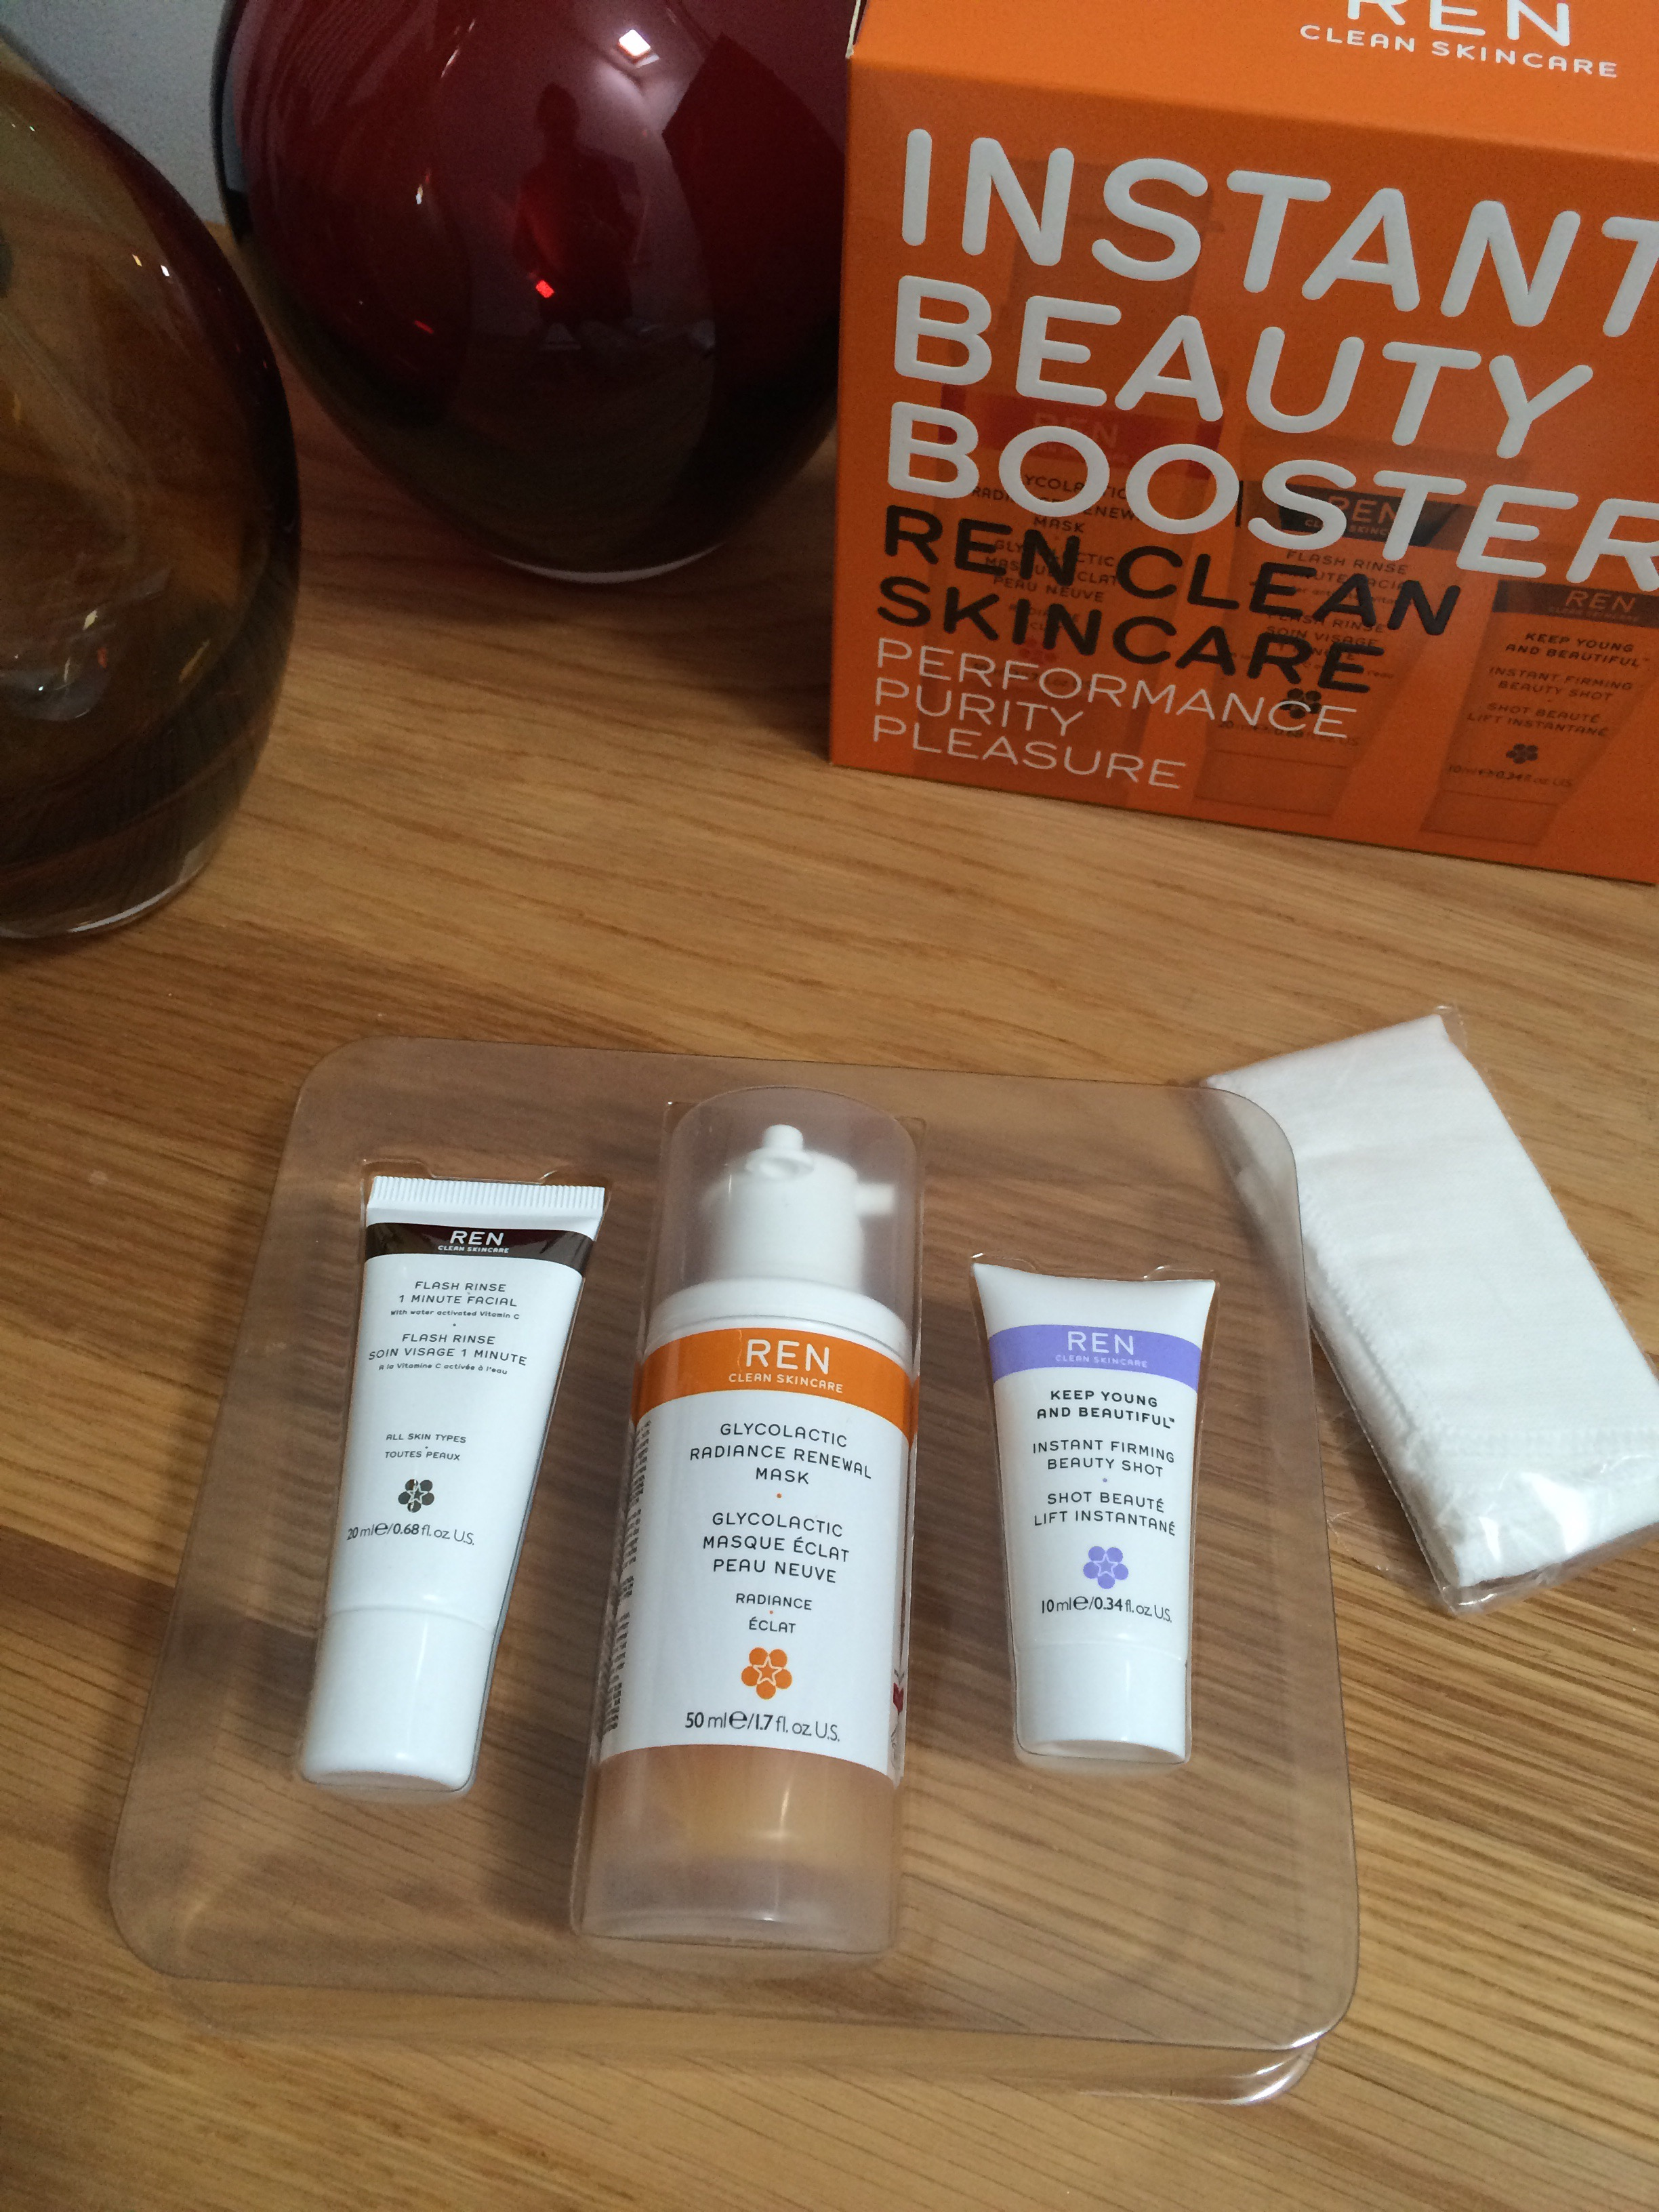 ren-antiaging-cf-skincare-review-glycolactic-instant-beauty-boost-box